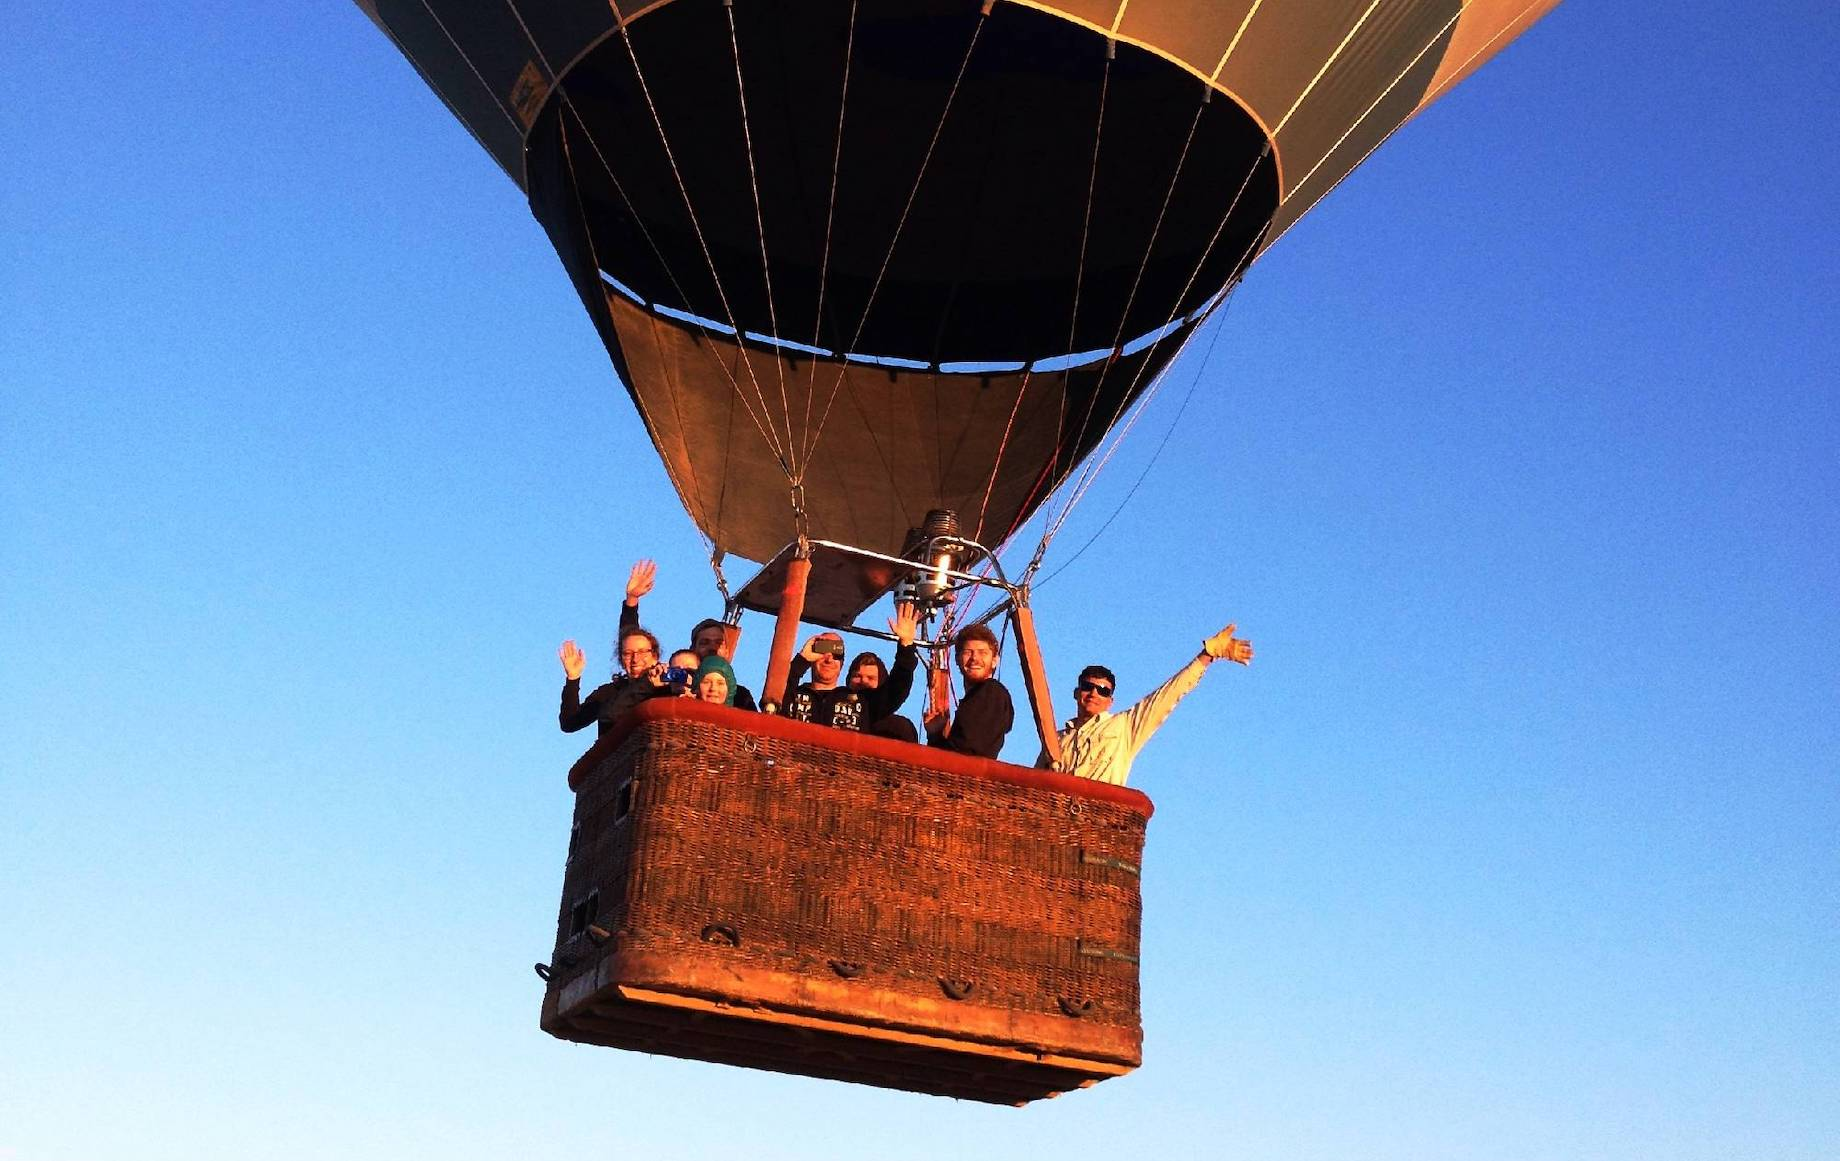 A group of travellers in the basket of a hot air balloon